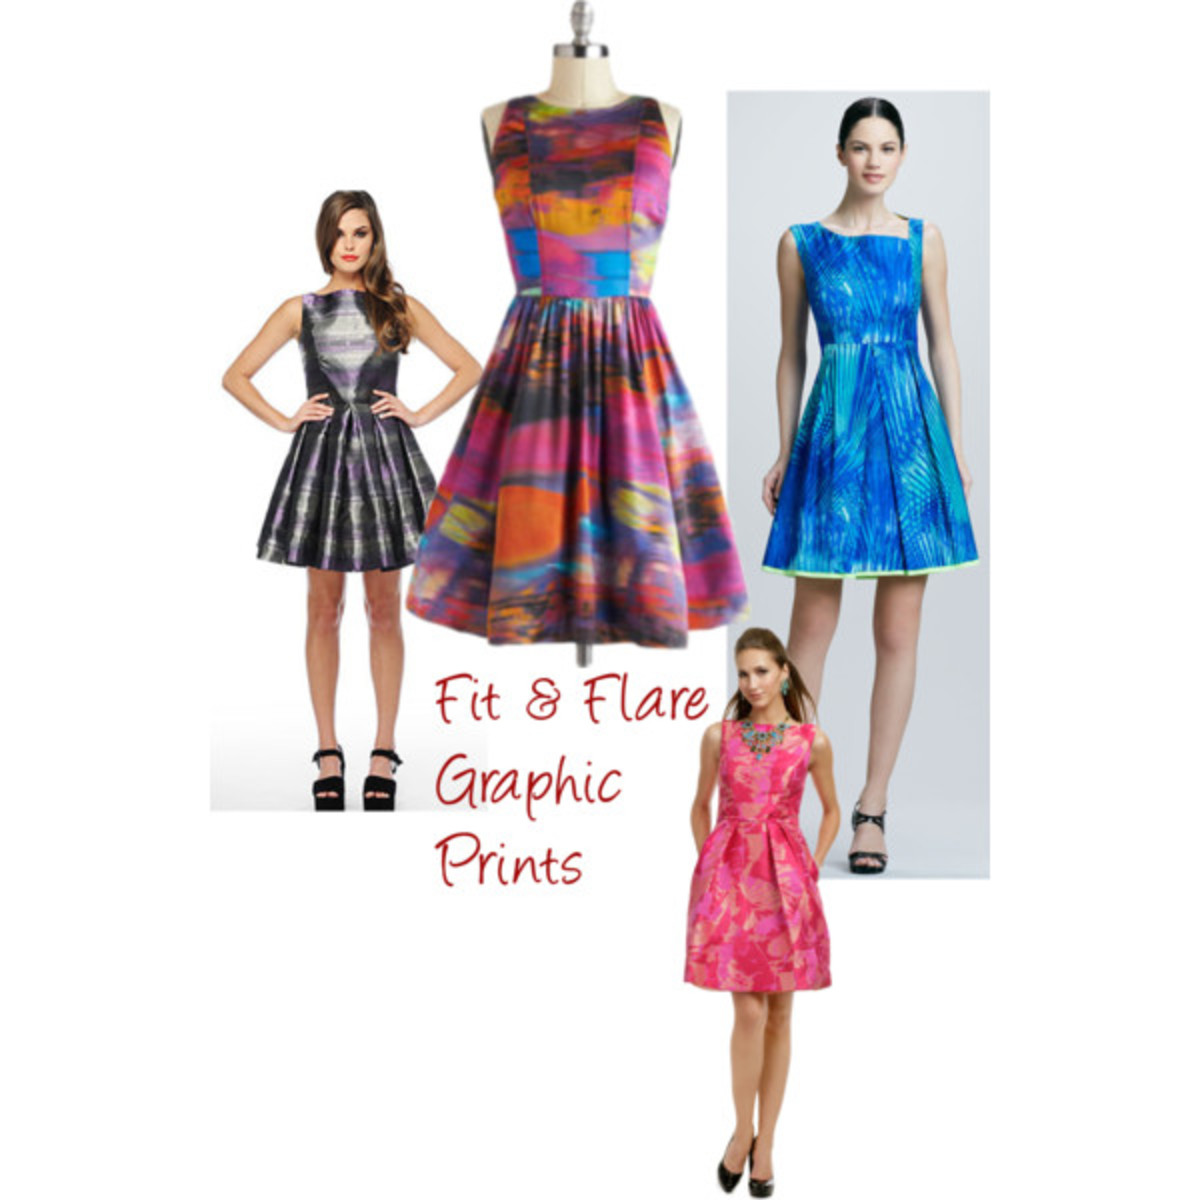 fit & Flare graphic